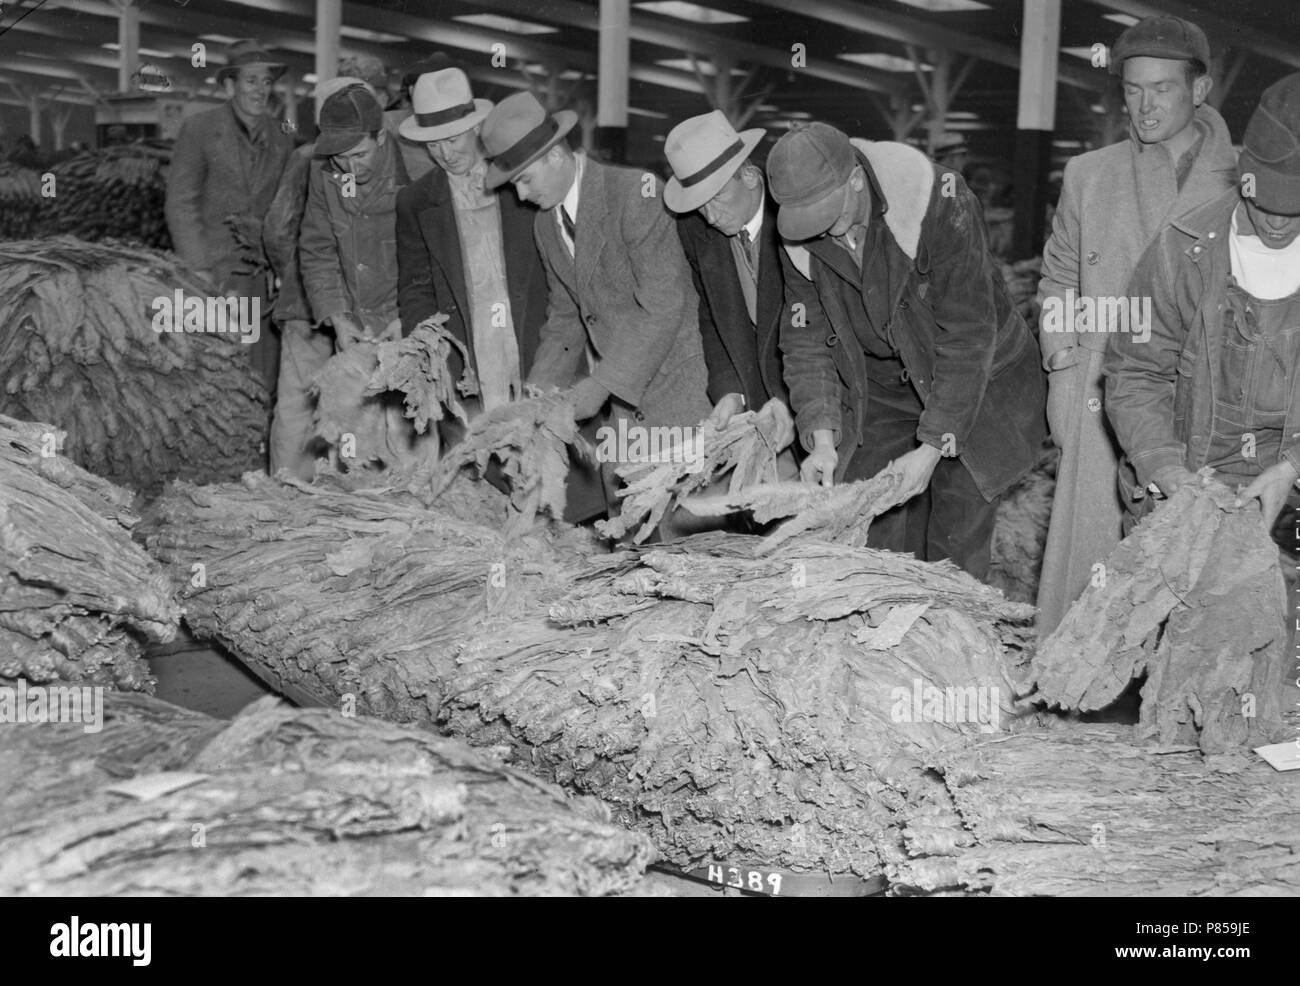 Tobacco buyers inspect the offerings at a warehouse in Weston, Missouri, ca. 1950. - Stock Image